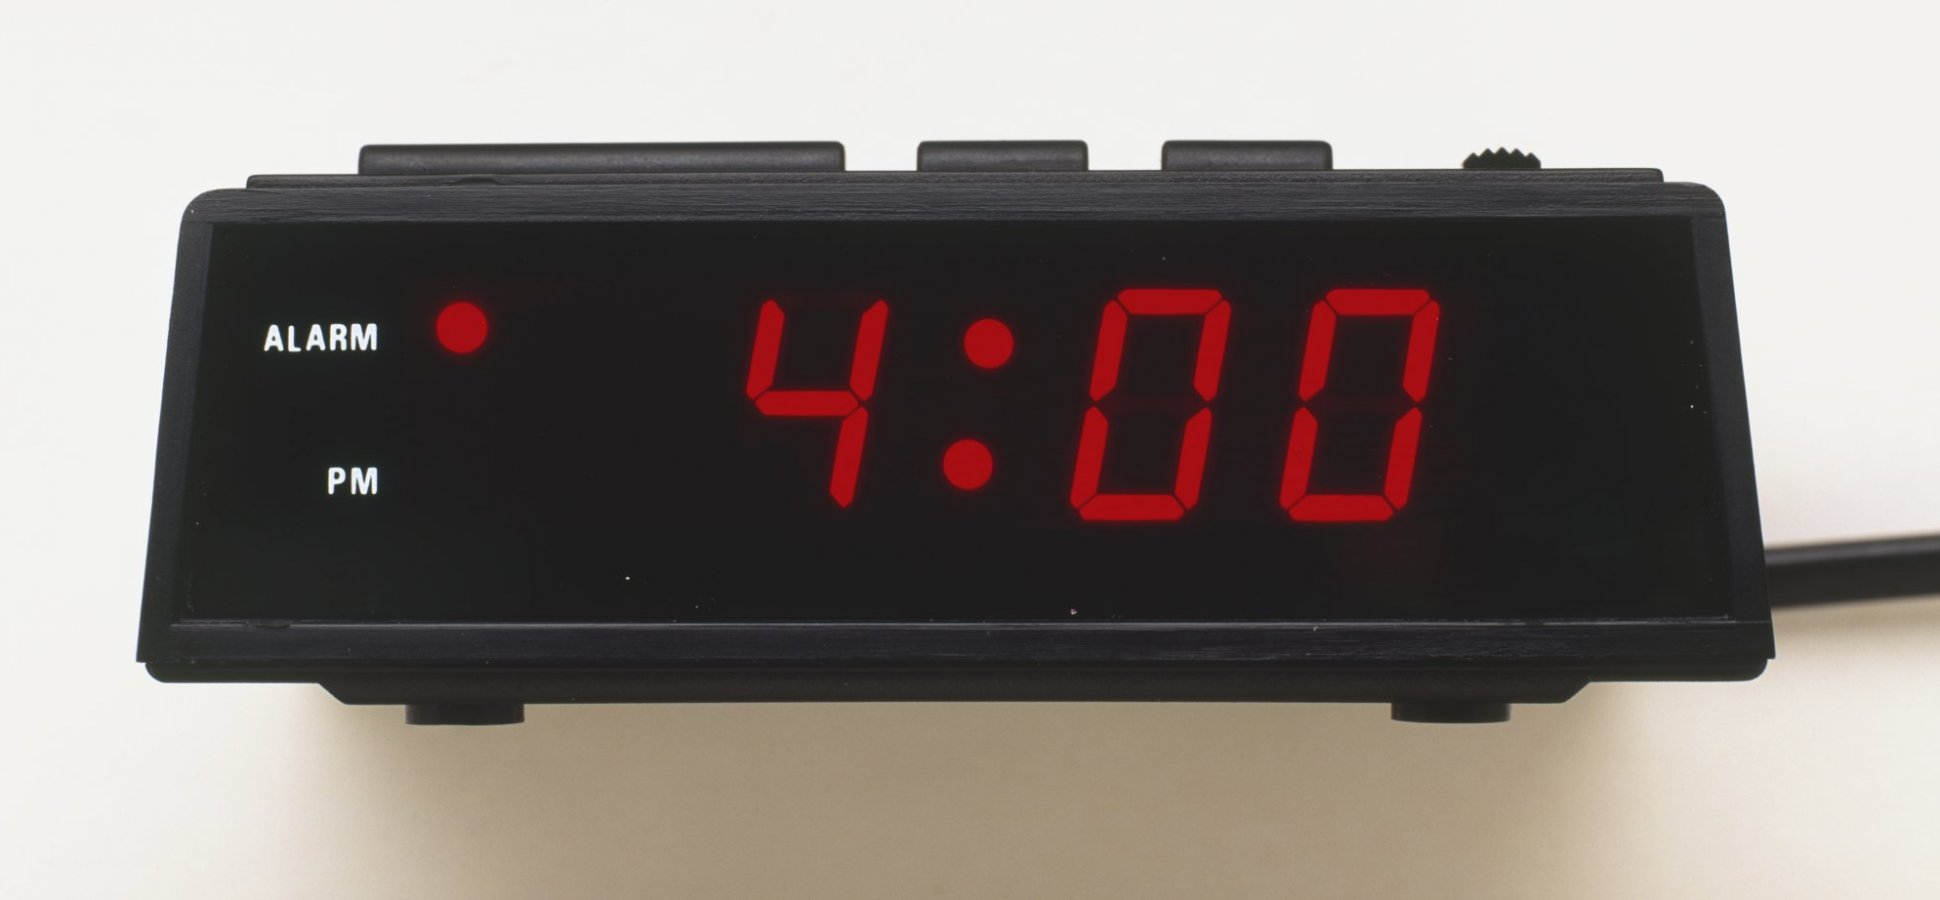 Getting Up at 4 a.m. Doesn't Work for Most People for 1 Simple Reason